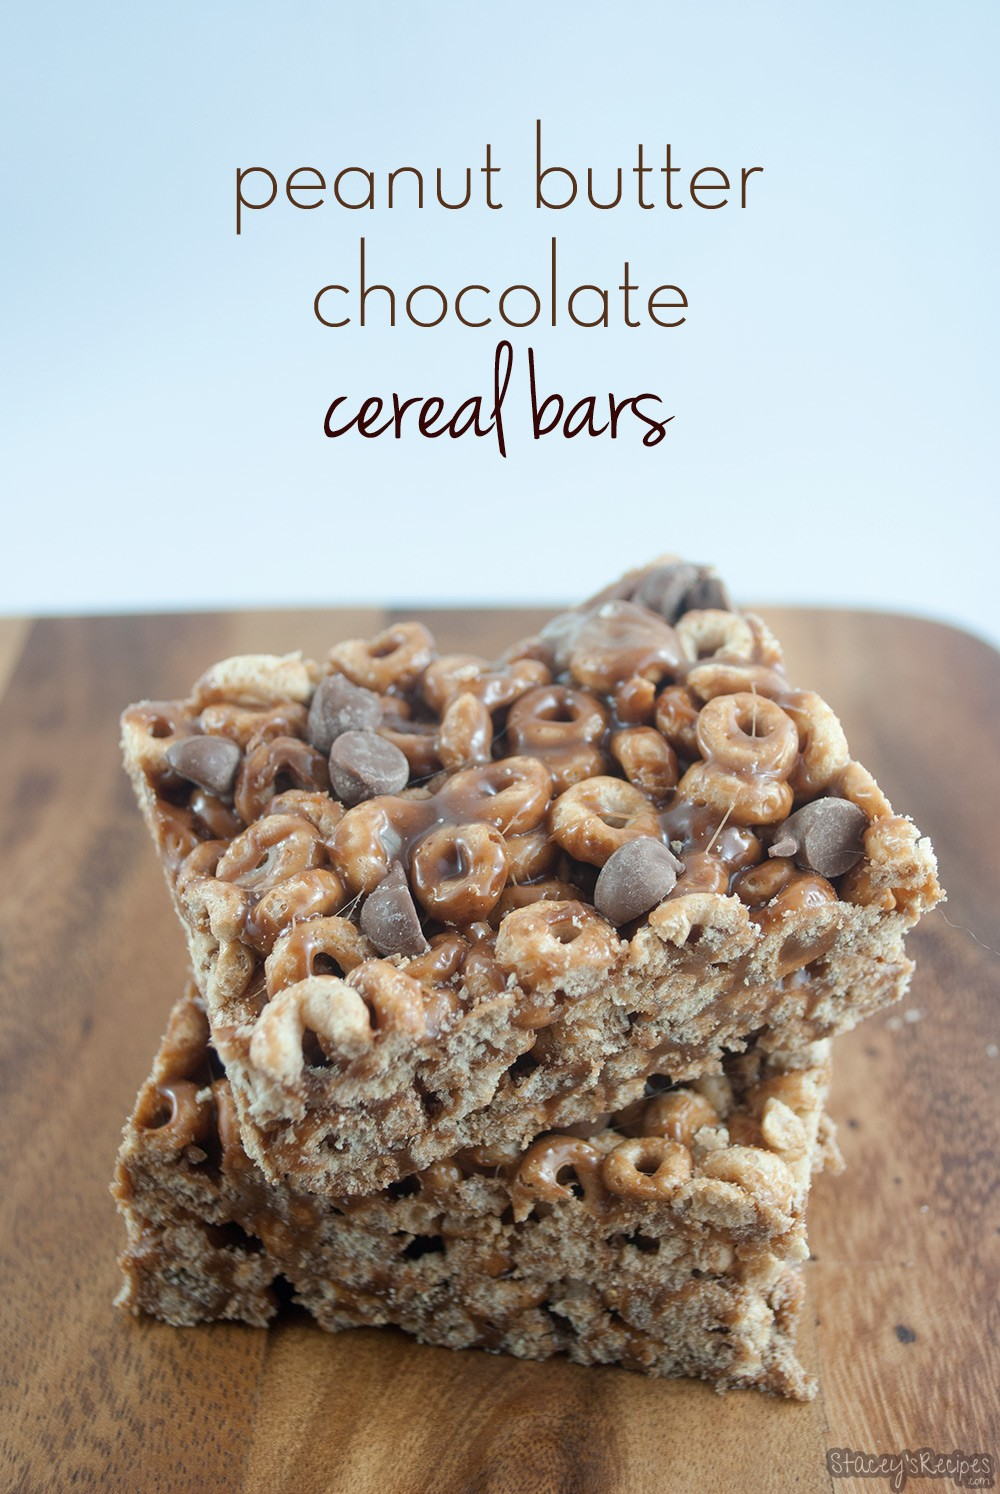 Peanut Butter Chocolate Cereal Bars